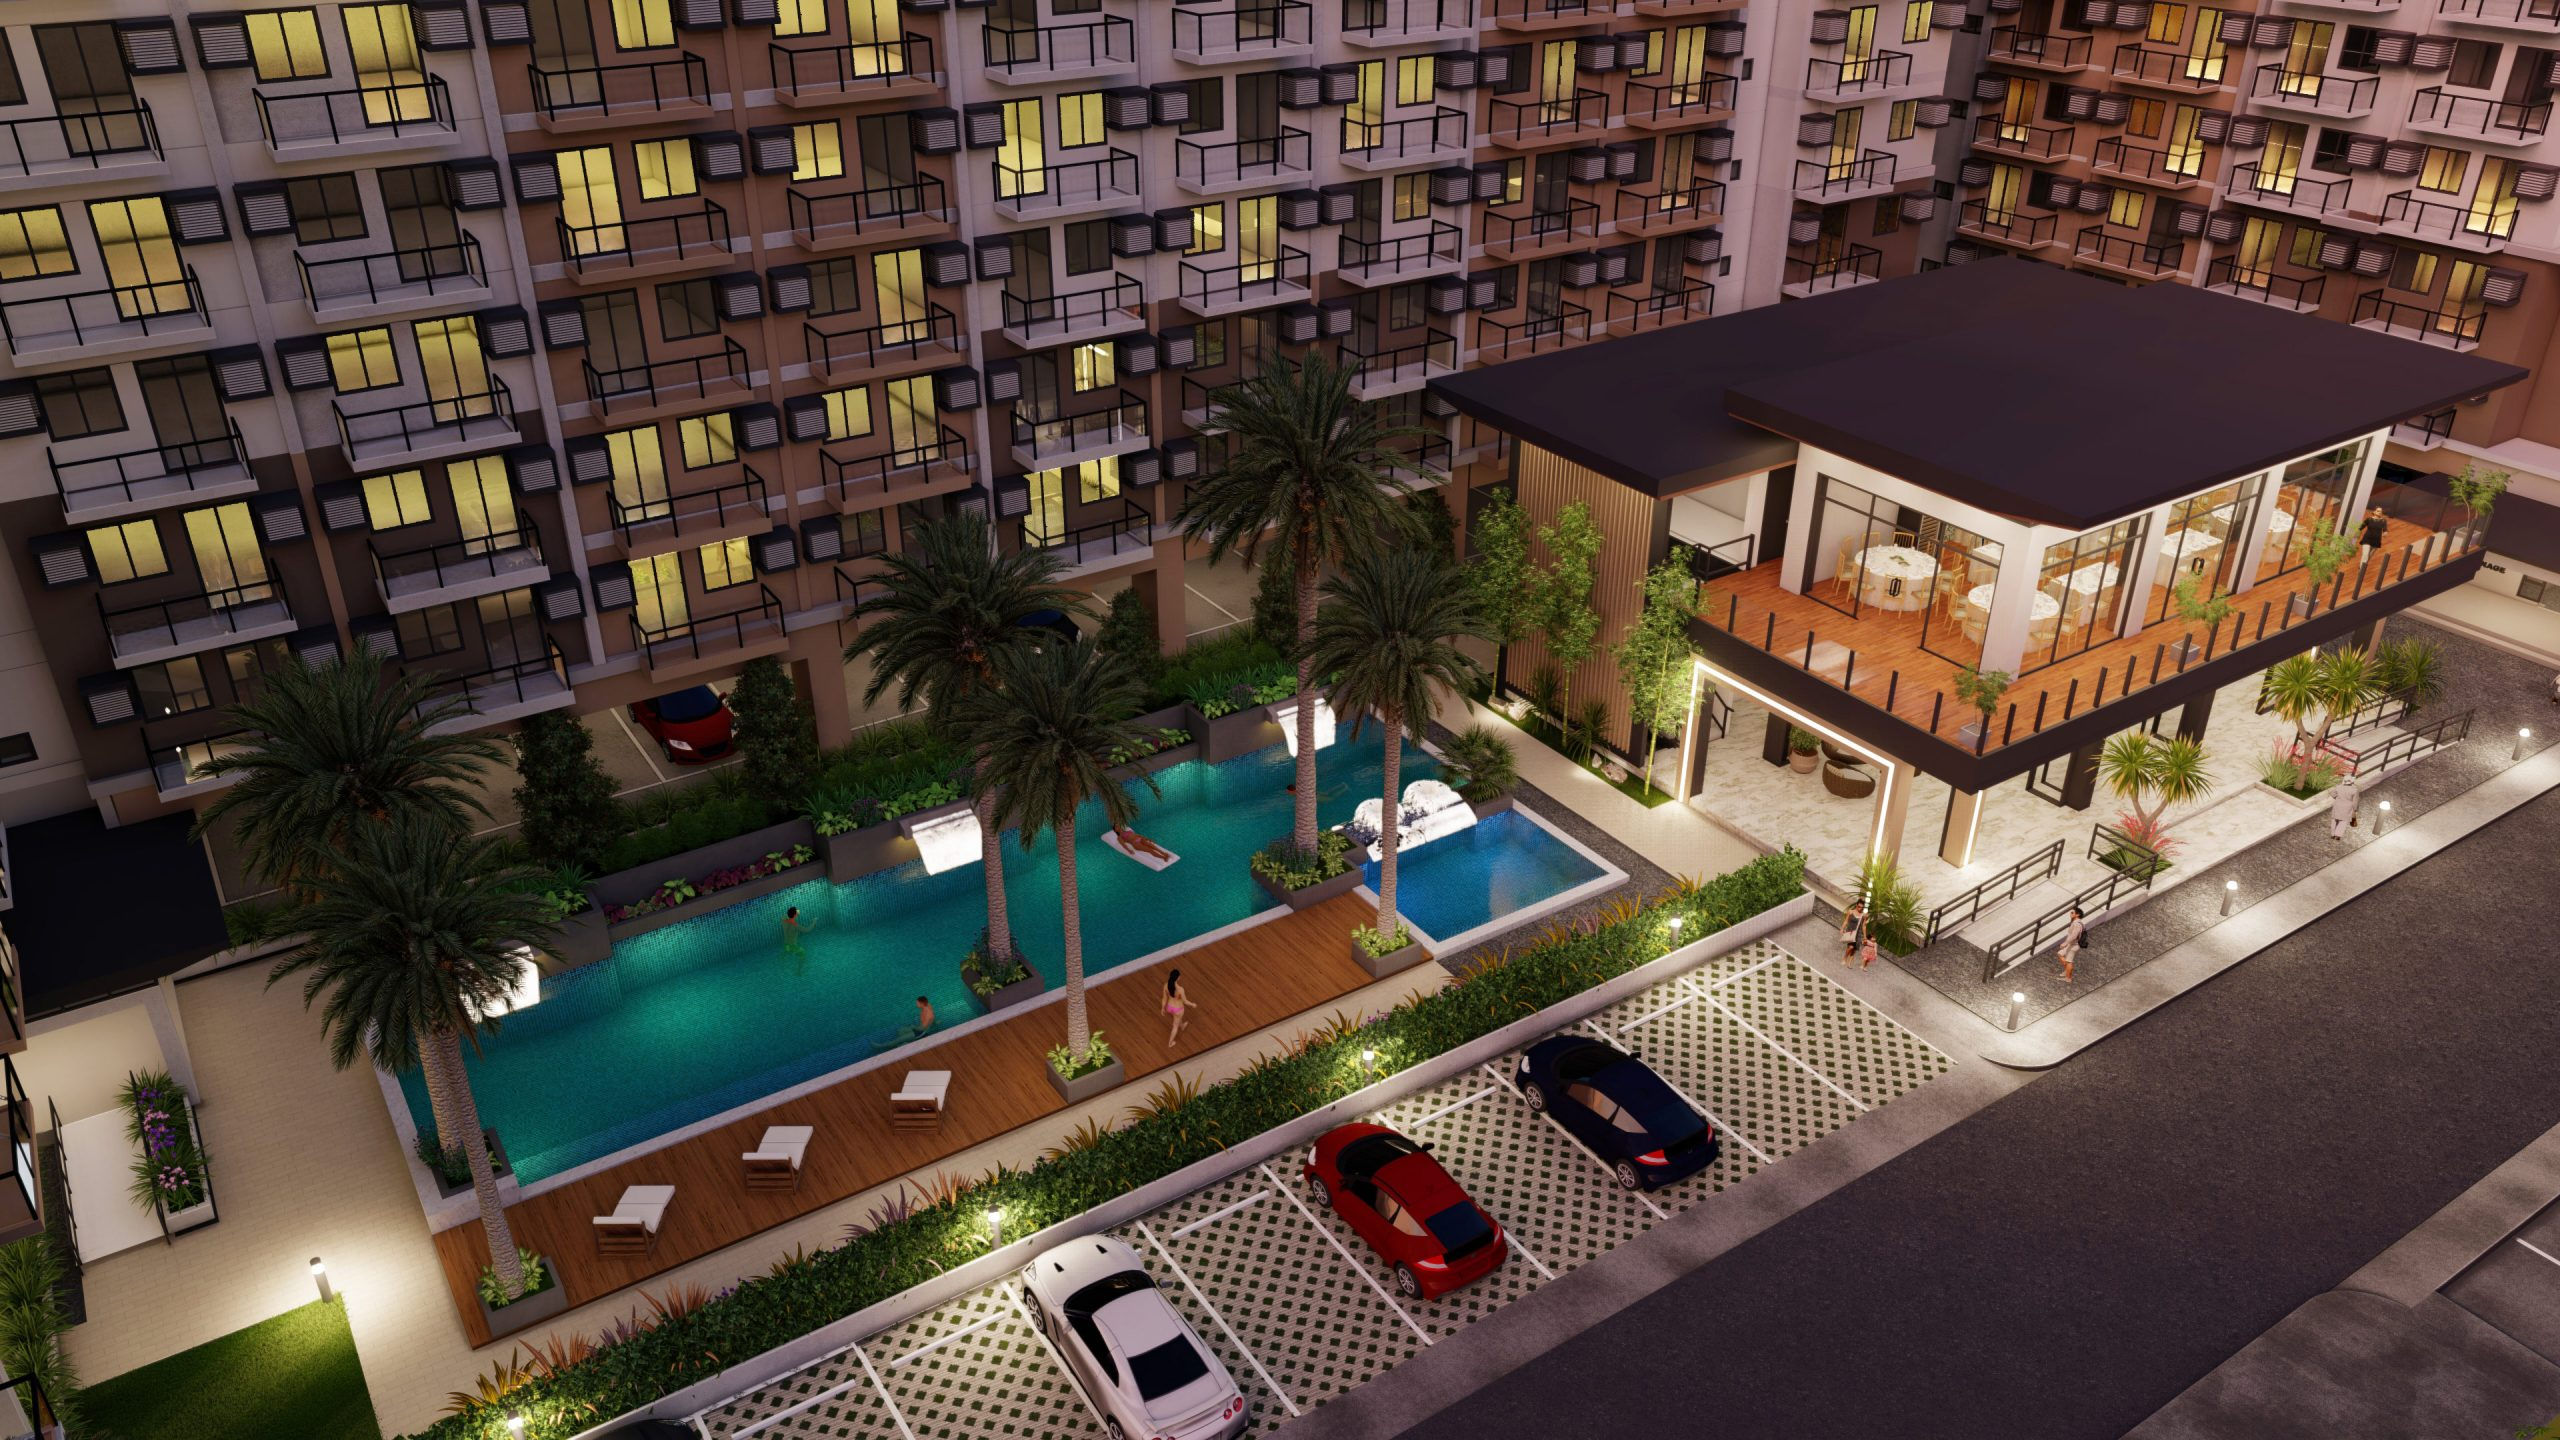 pool and clubhouse in a condo building ground floor with parked cars